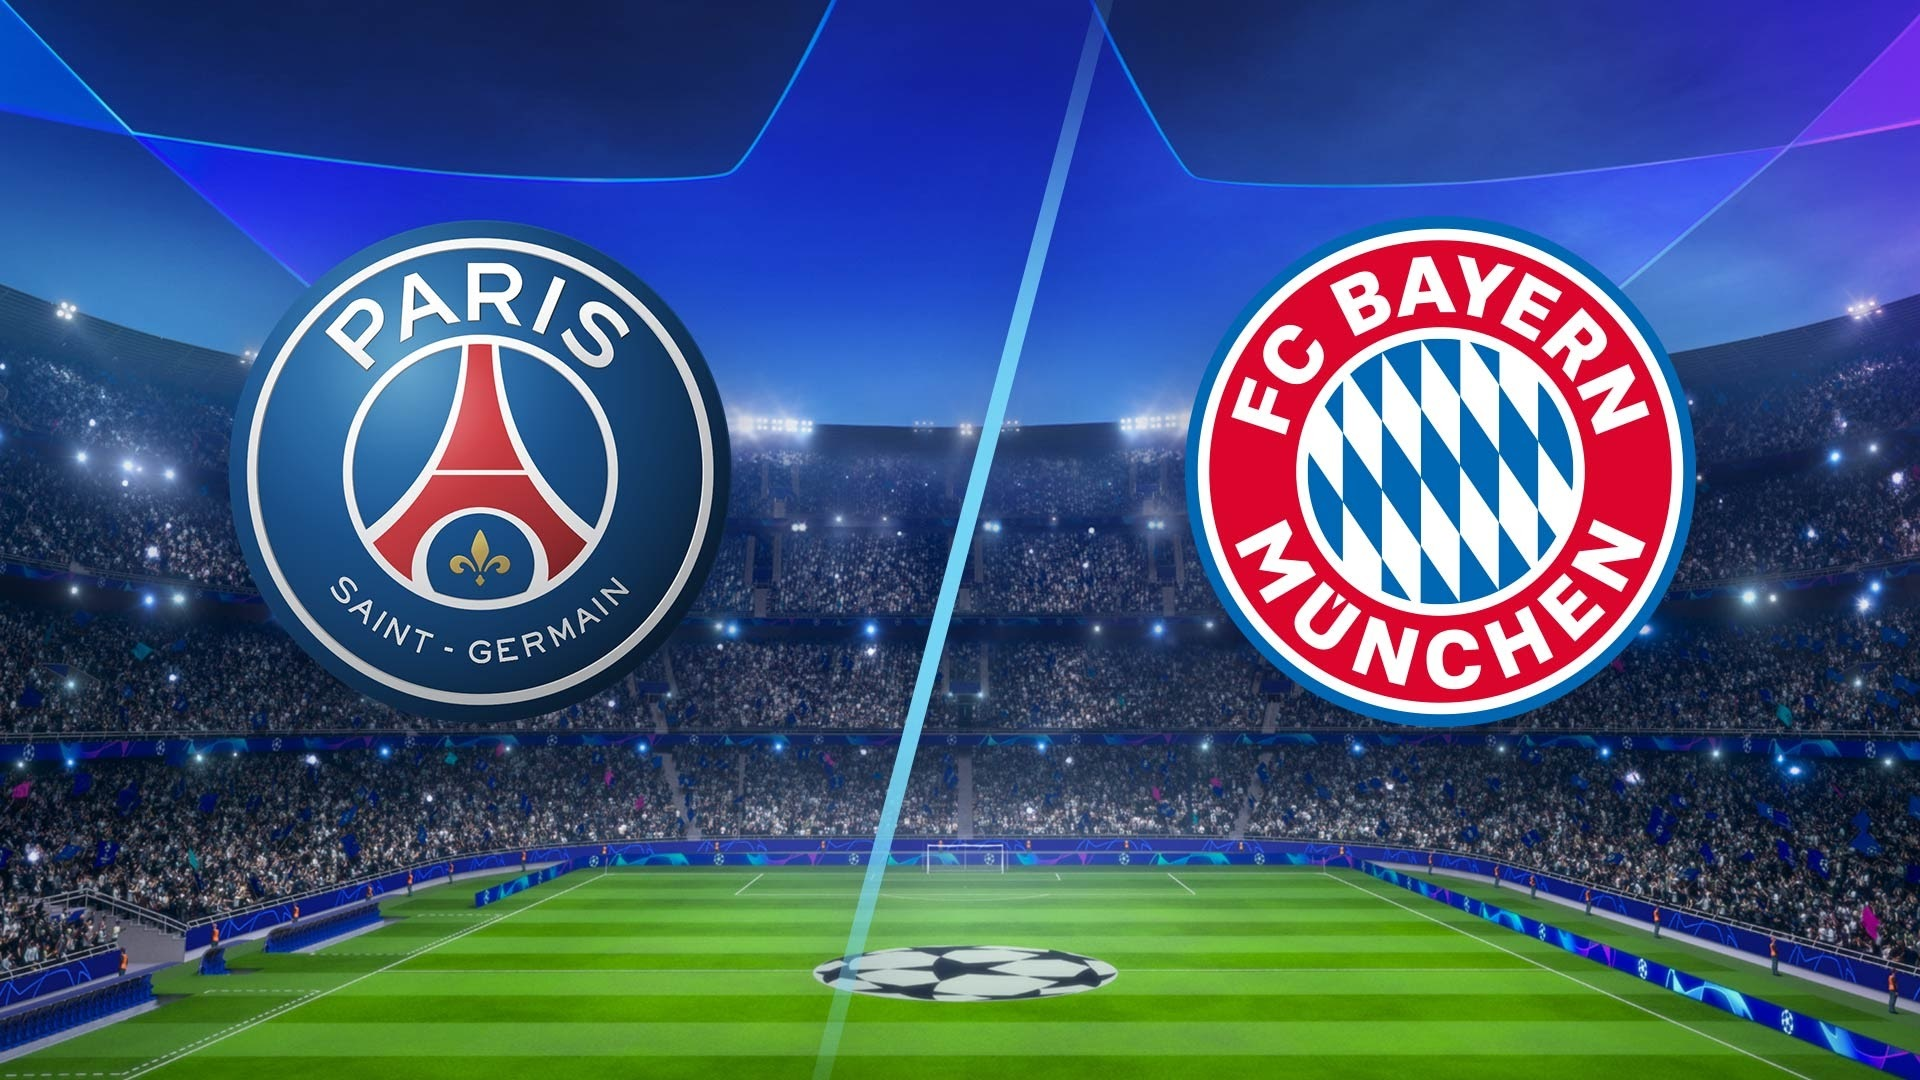 Watch Uefa Champions League Highlights Paris Vs Bayern Full Show On Cbs All Access